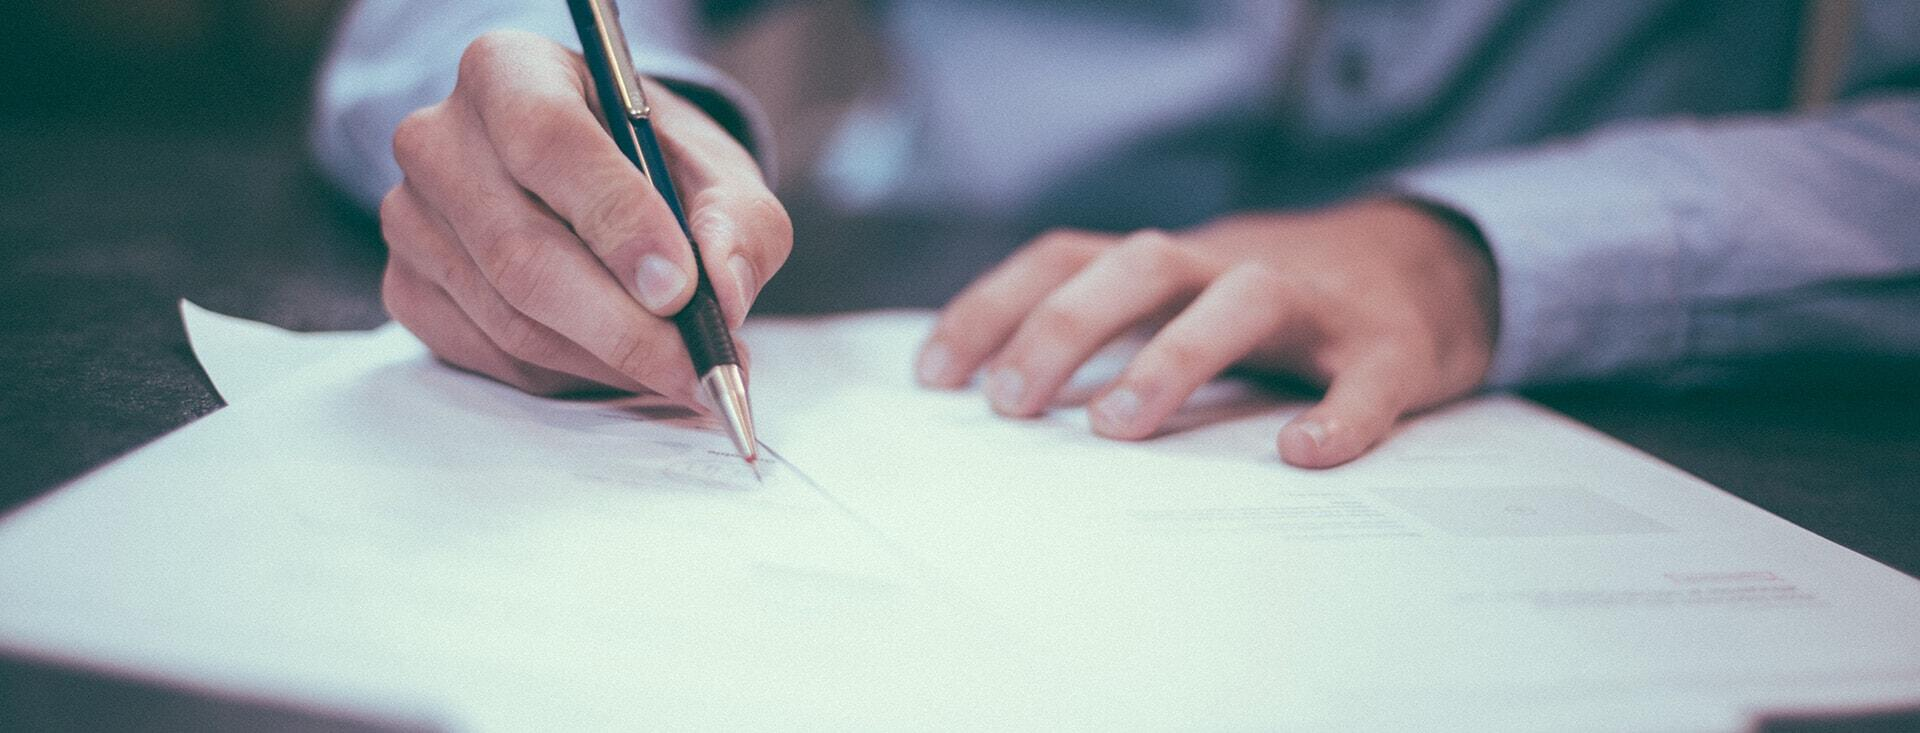 Man writing on paper on a desk